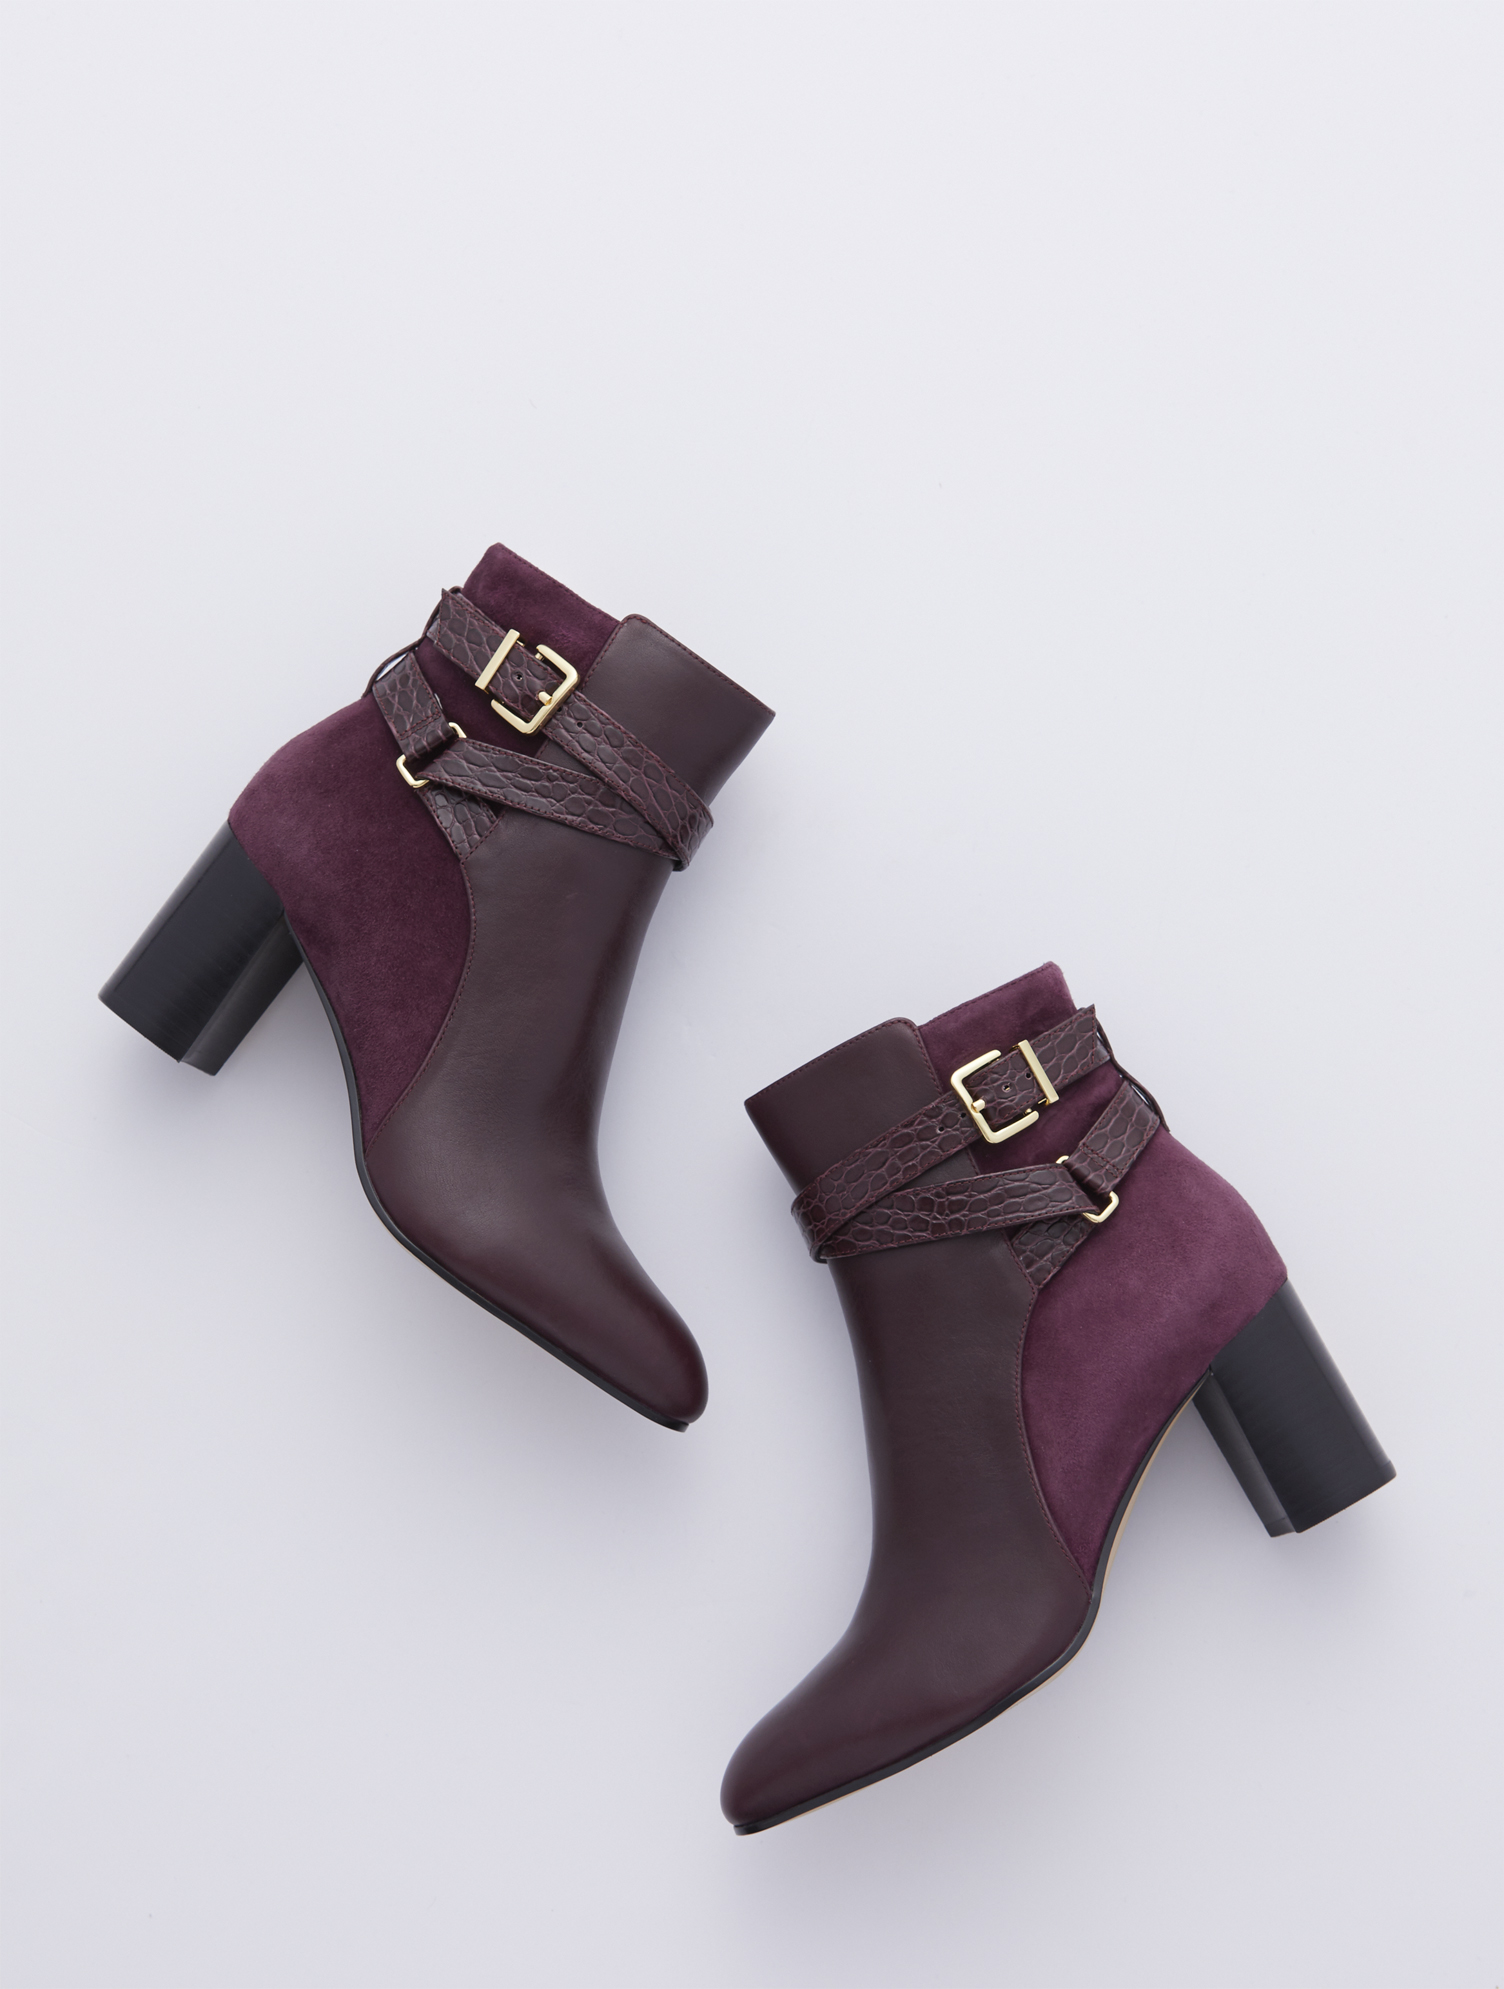 Versatile leather booties with a sleek silhouette, feminine flare heel and almond-shaped toe. Inside-step zip allows for easy on and off. Features 3 inches heelAlmond toe3MM Memory foam footbedImported Material: 100% Leather Simone Vachetta Ankle Boots - Rich Burgundy - 11M Talbots